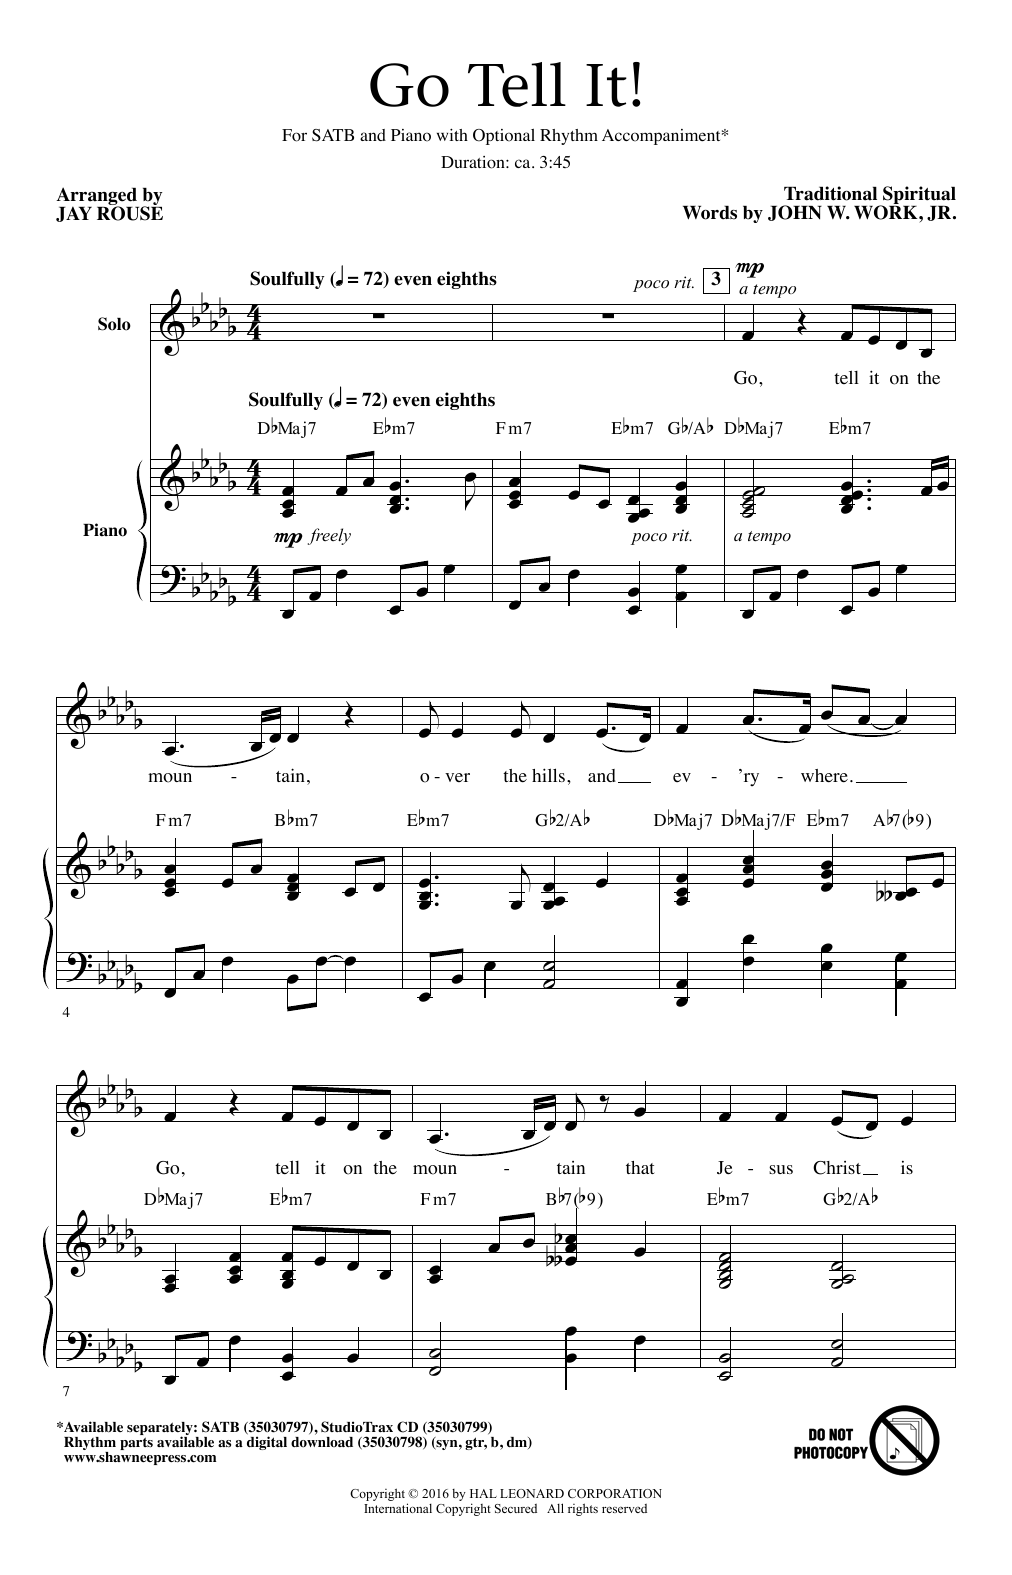 Go Tell It! (arr. Jay Rouse) (SATB Choir)